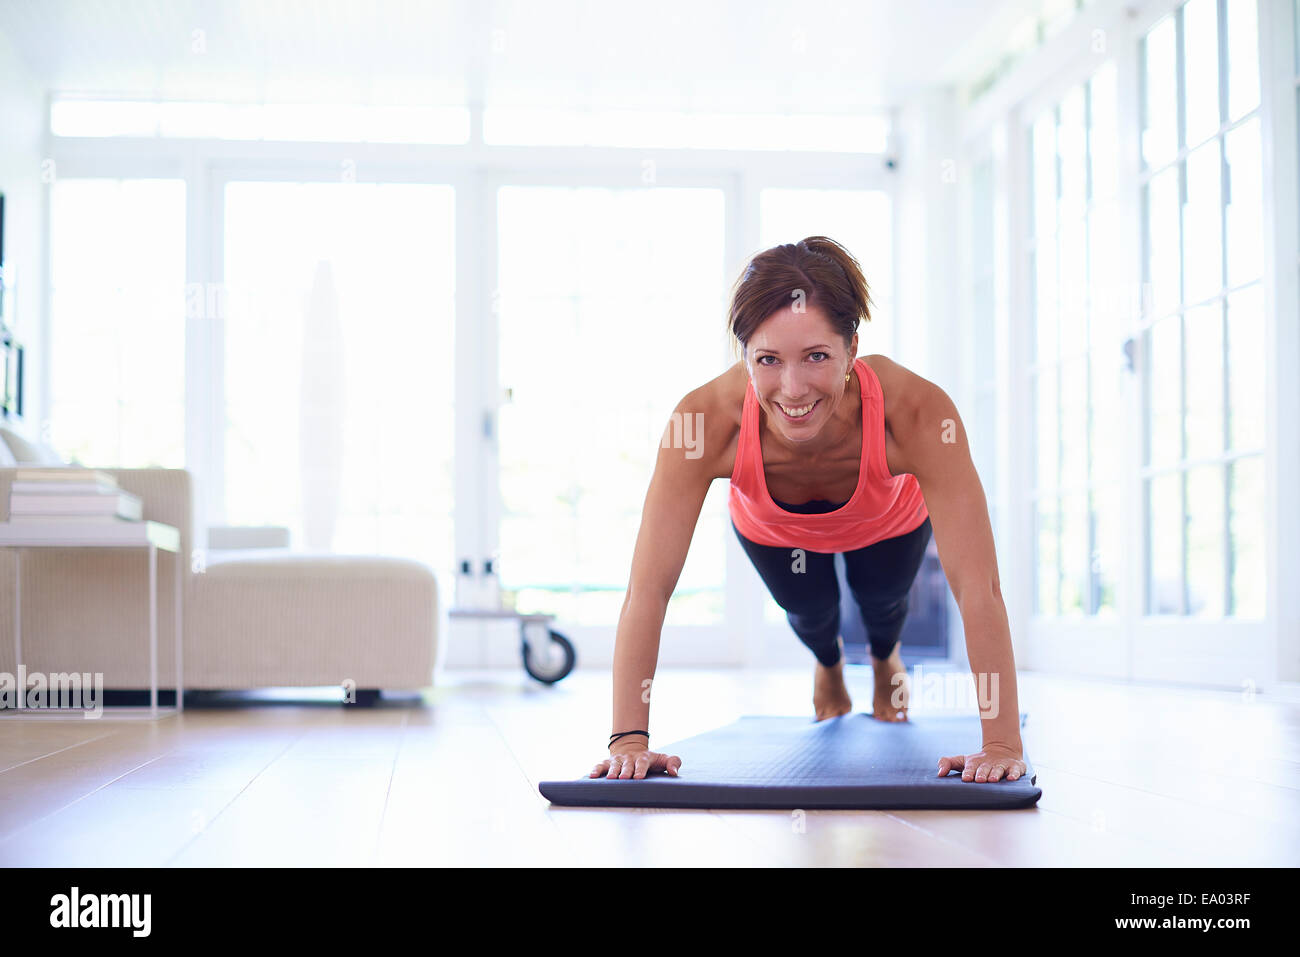 Mid adult woman doing press ups dans la salle de séjour Photo Stock